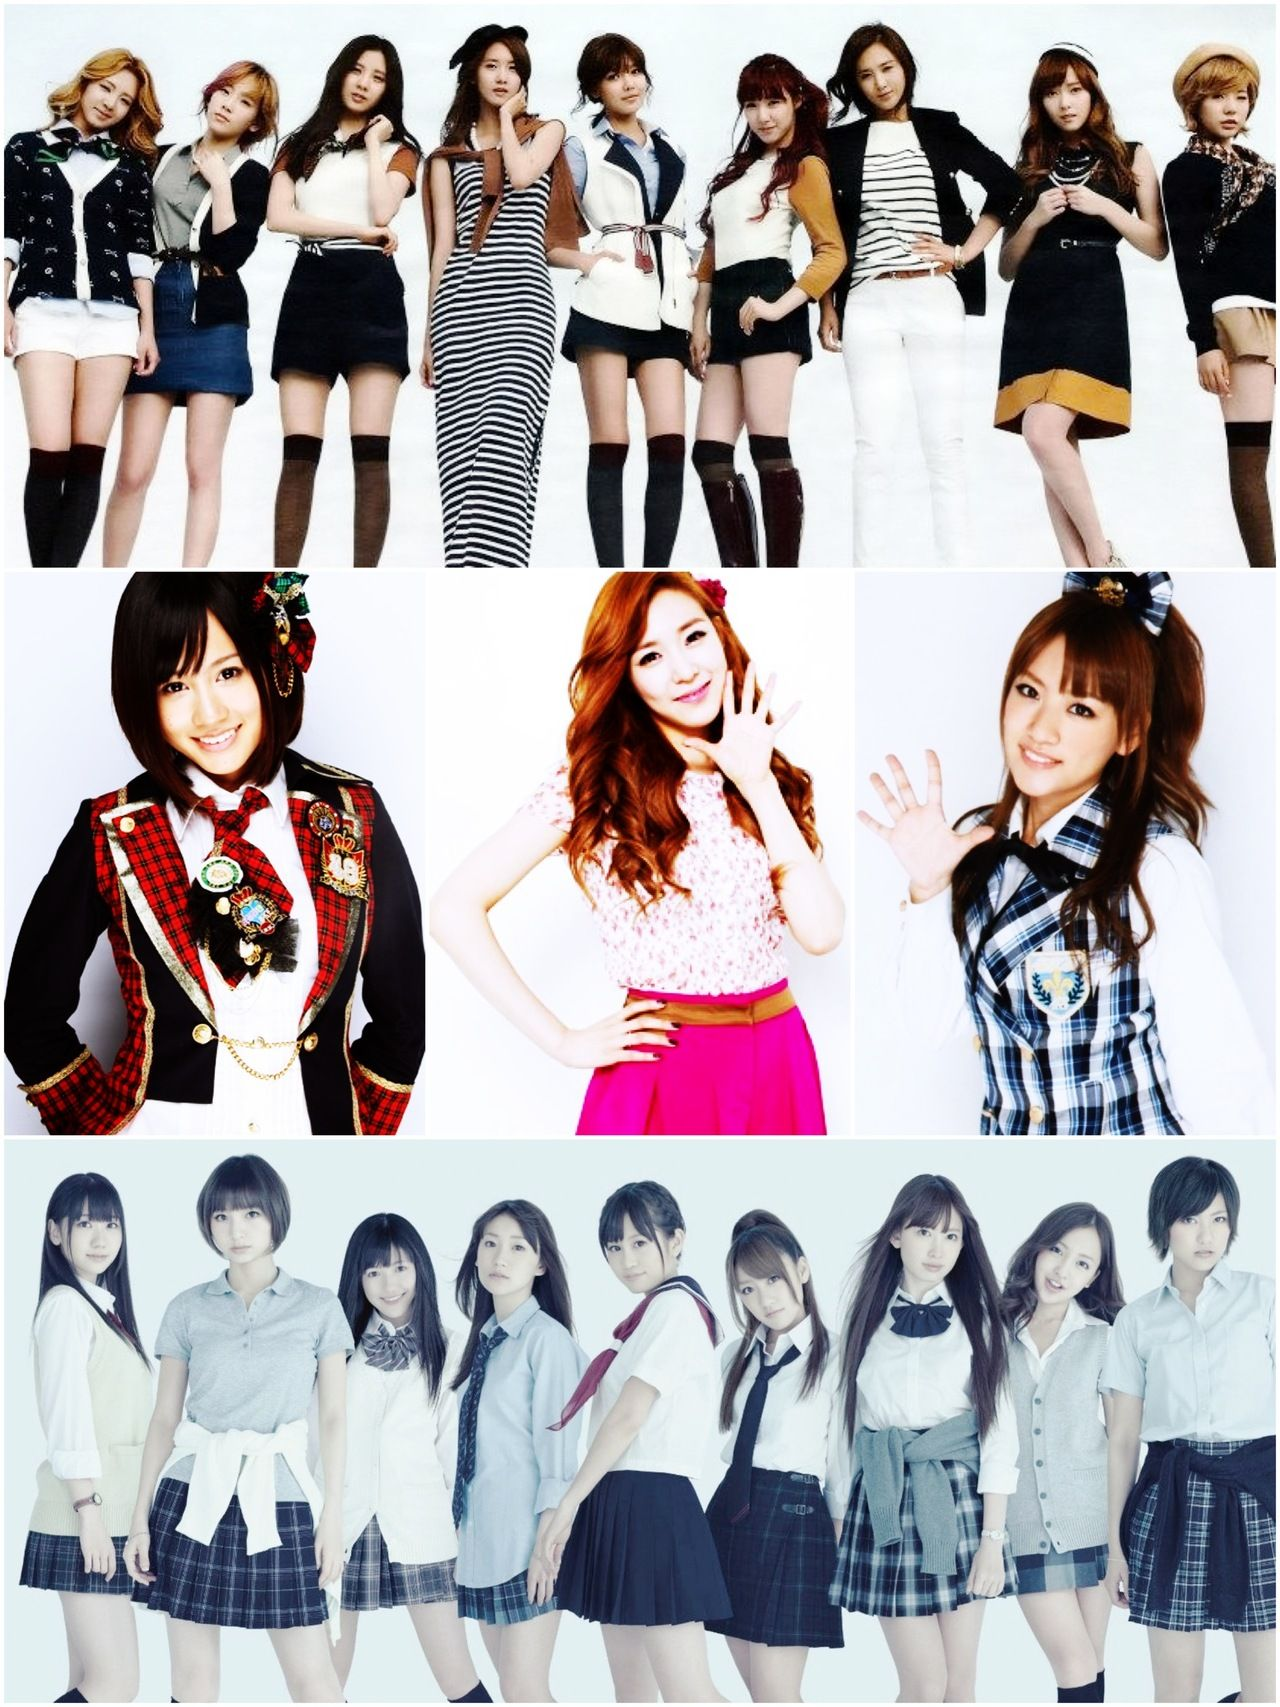 Akb48 Tumblr HD Wallpapers 341474 1280x1707px, tumblr